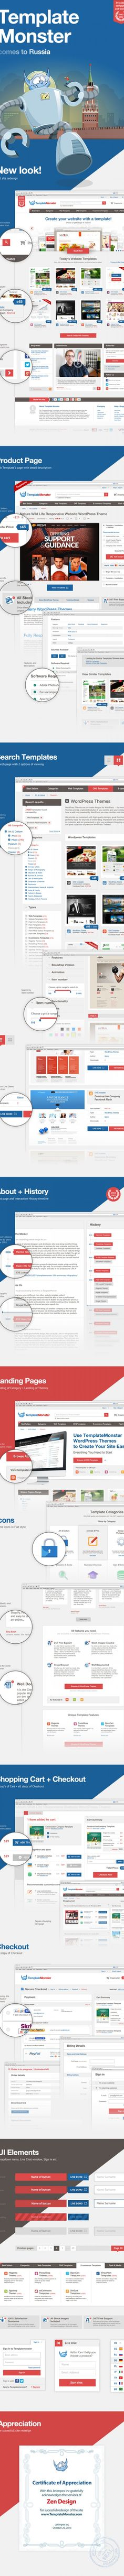 TemplateMonster – 2013 redesign